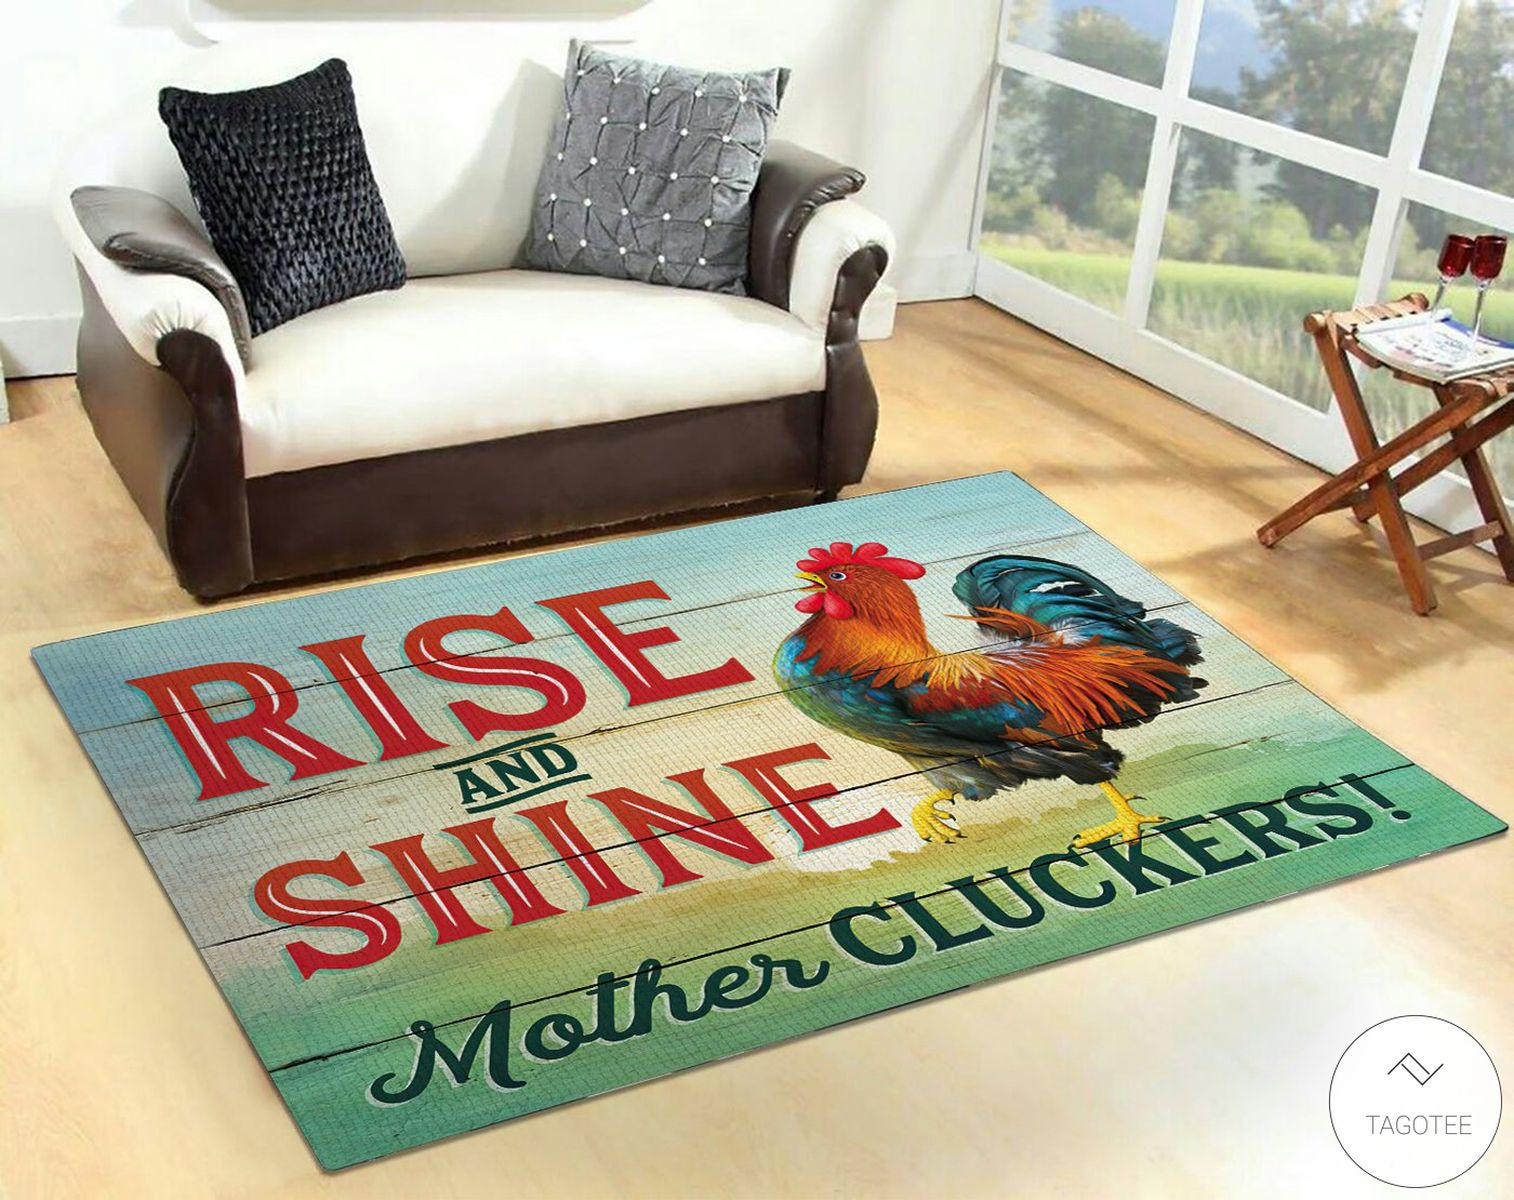 Rinse and shine mother cluckers rugz